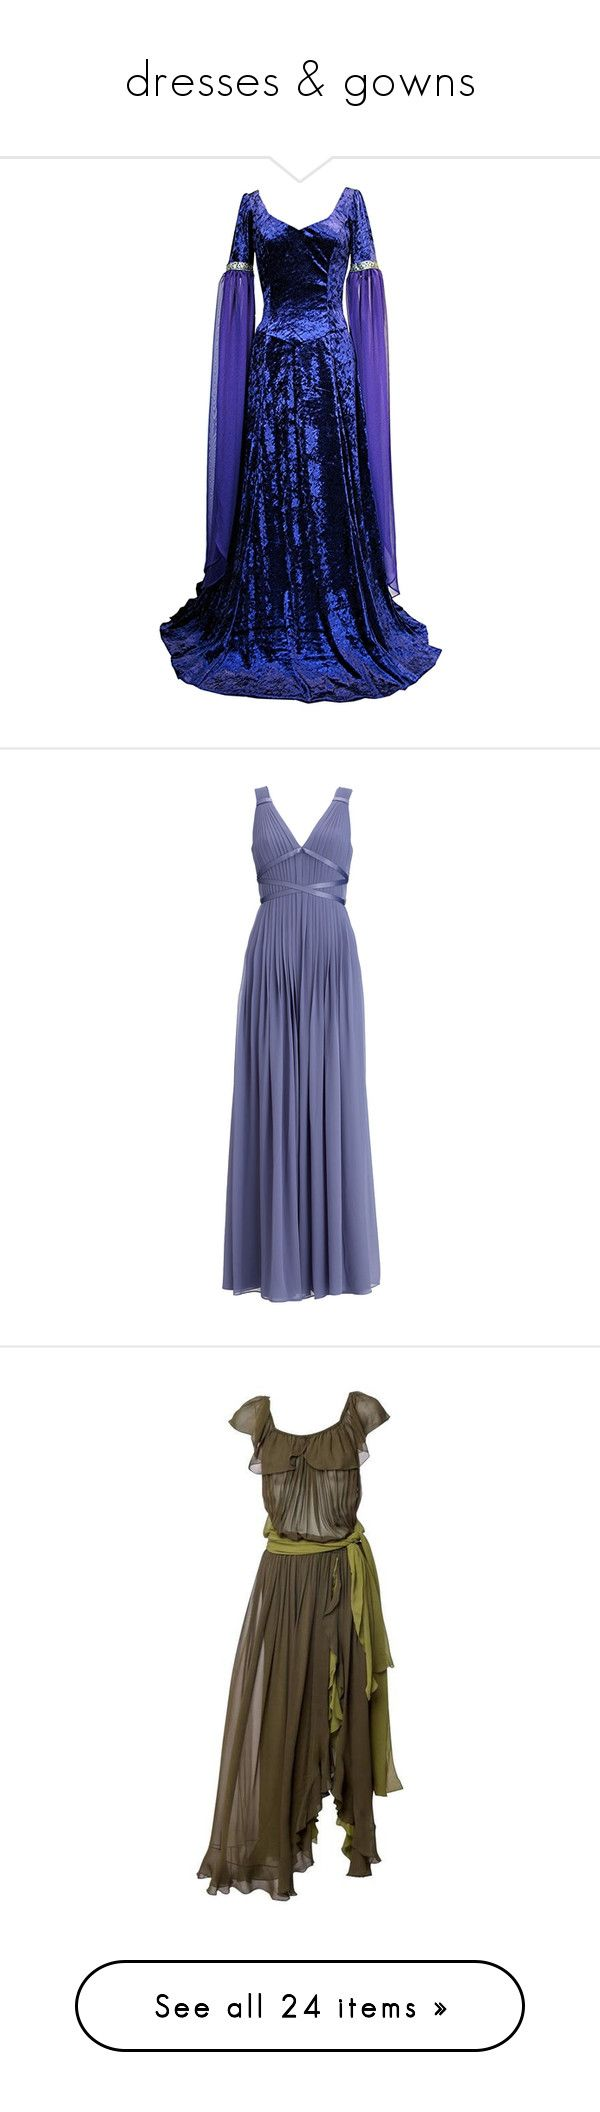 """dresses & gowns"" by valaquenta ❤ liked on Polyvore featuring dresses, medieval, gowns, medieval dresses, long dresses, vestidos, women, blue color dress, monsoon dresses and lattice dress"